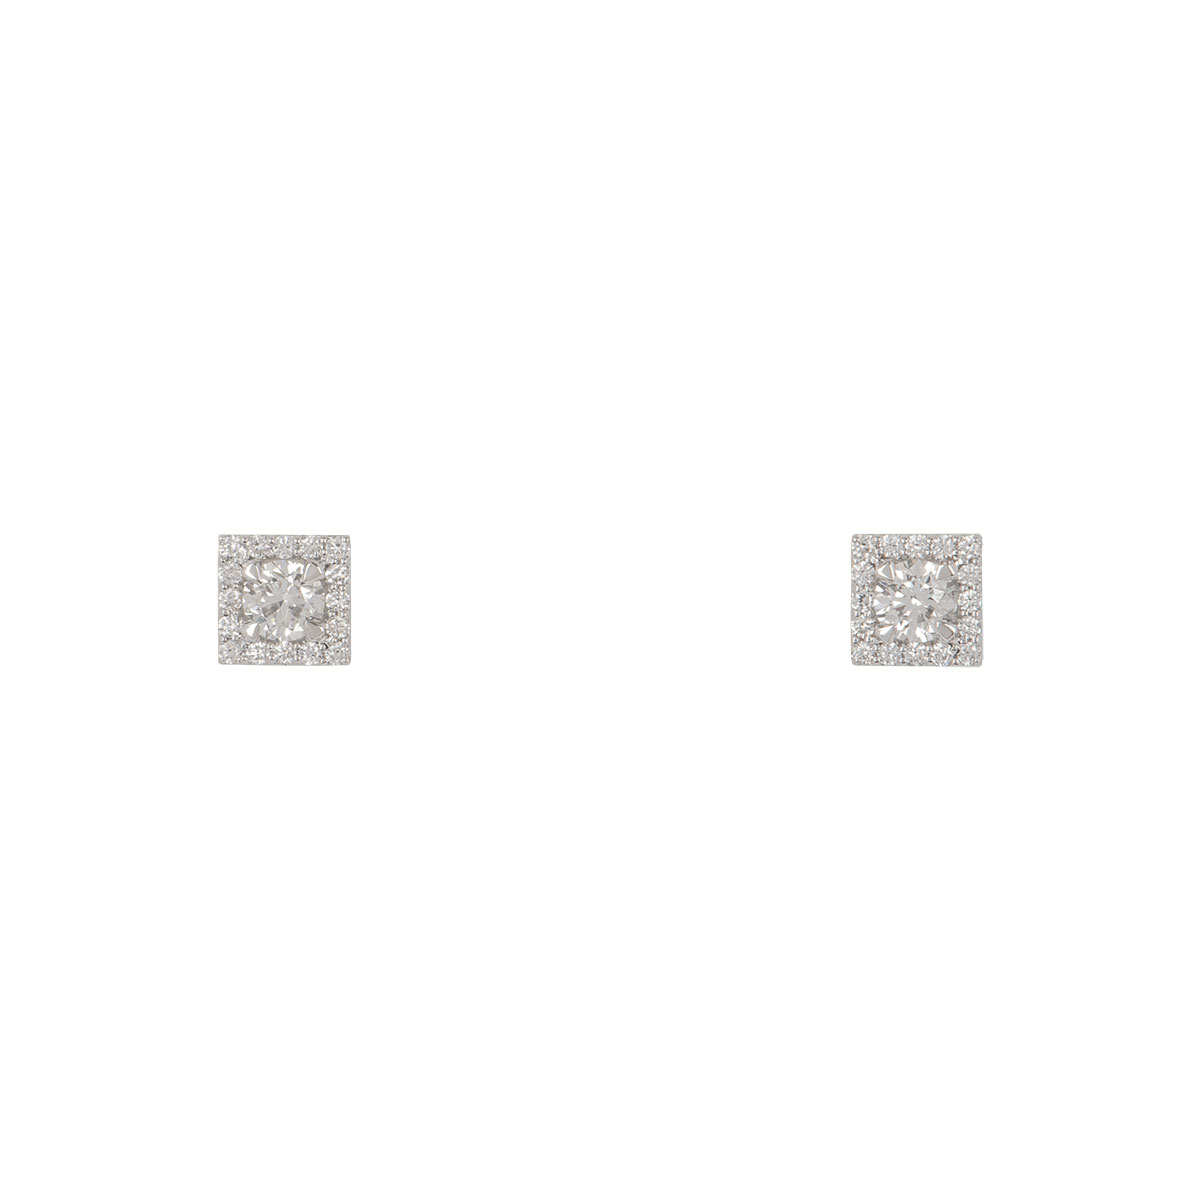 White Gold Diamond Cluster Set Earrings 1.17ct